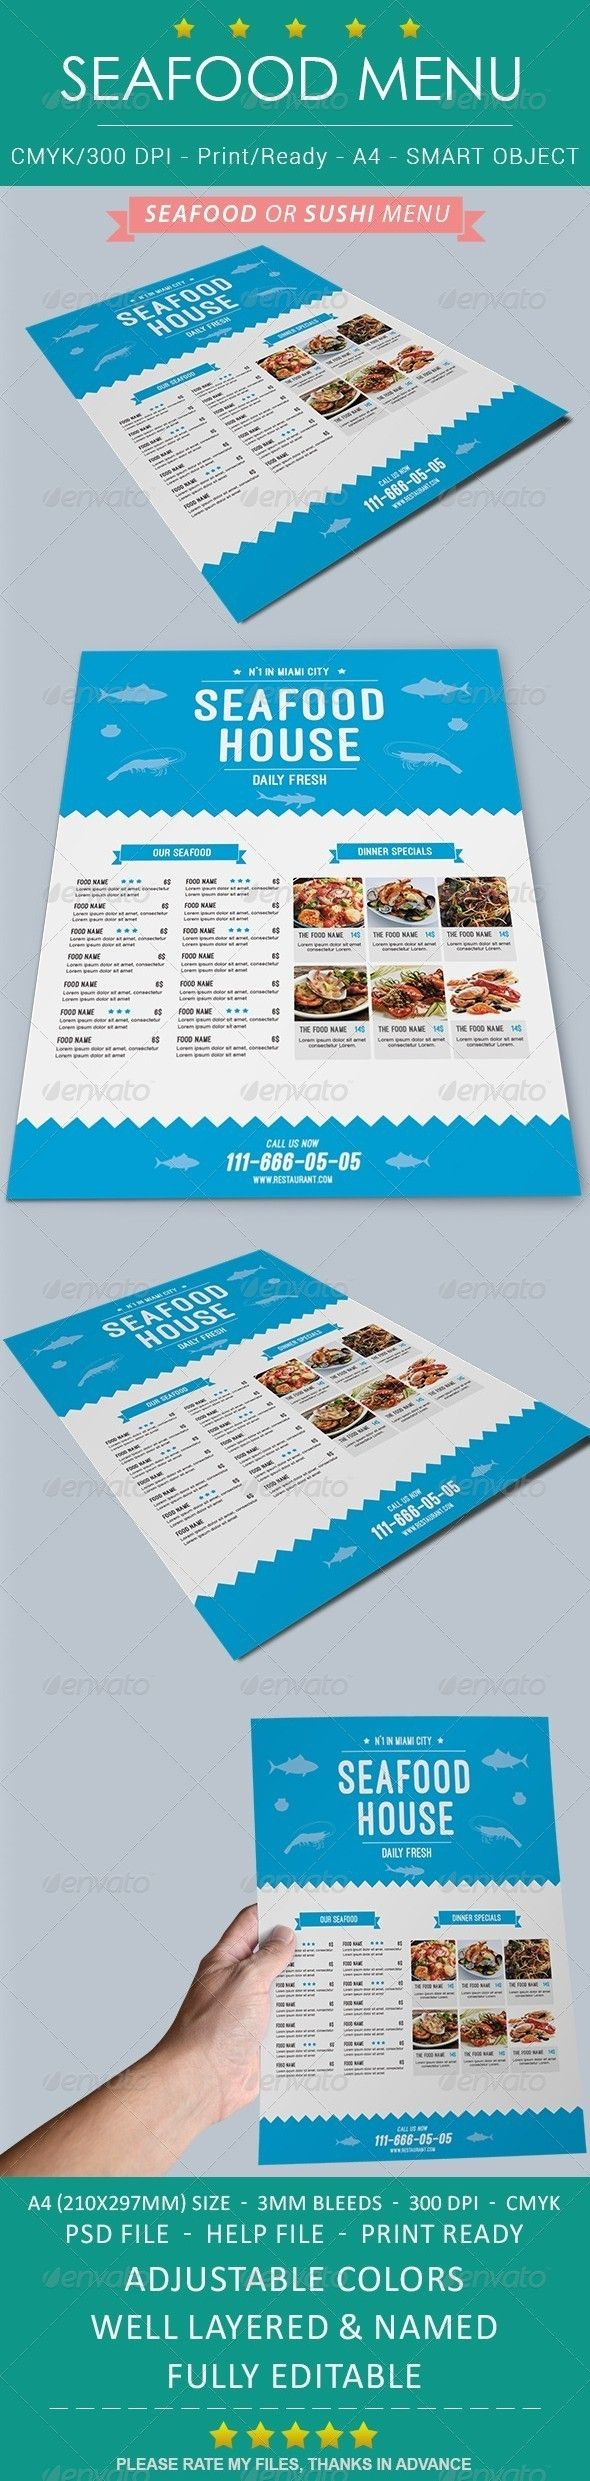 Seafood Sushi Restaurant Menu Template #design Download: http://graphicriver.net/item/seafood-sushi-restaurant-menu/8674922?ref=ksioks